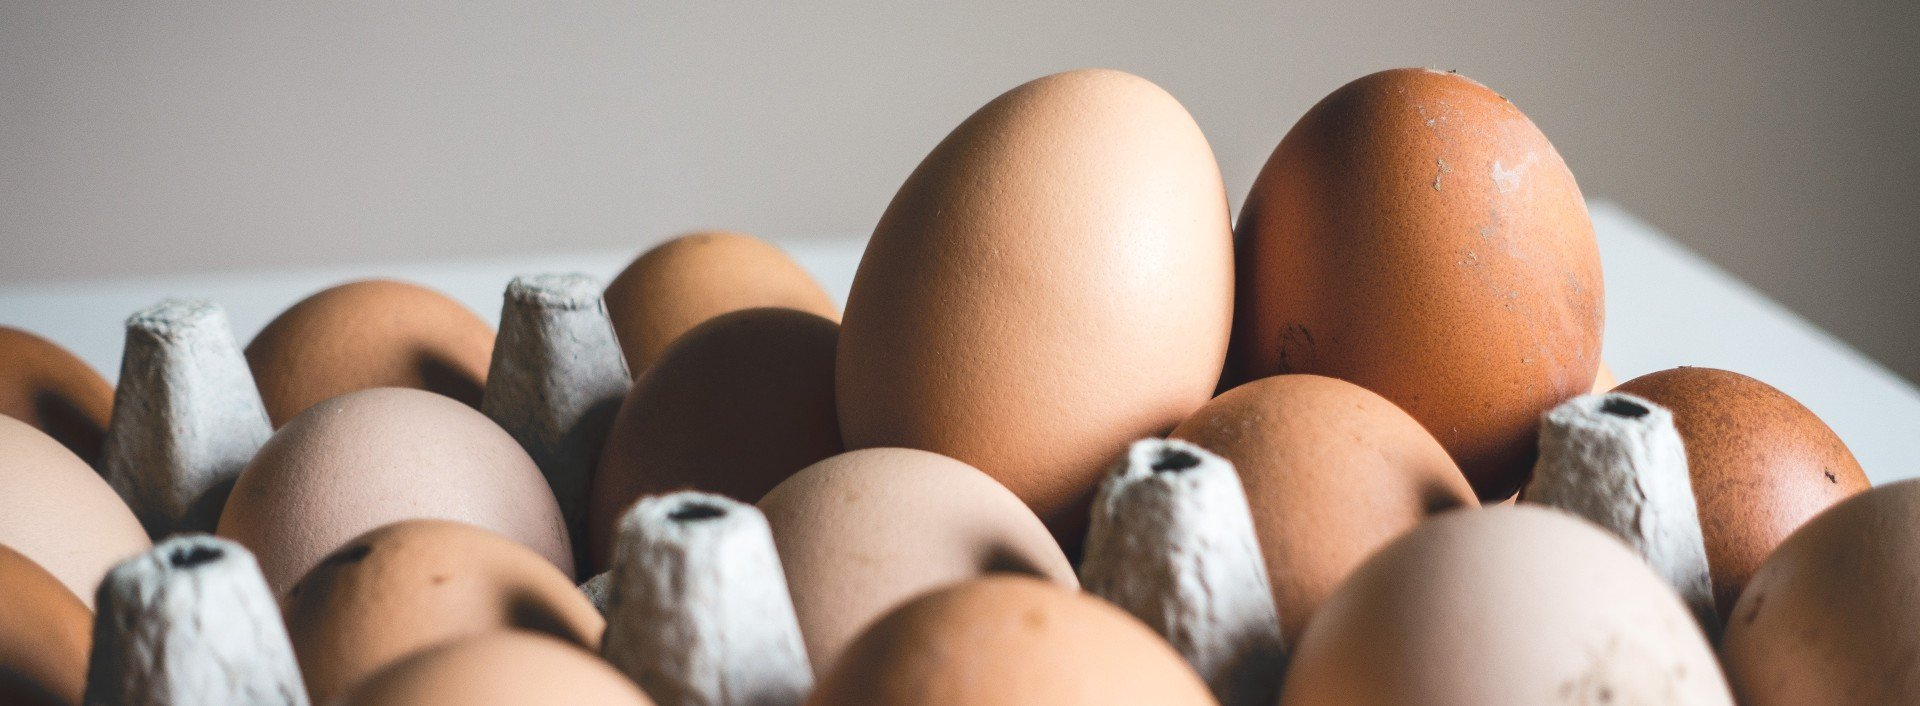 Brown eggs sit in a carton against a plain background. There are many ways to eat eggs!